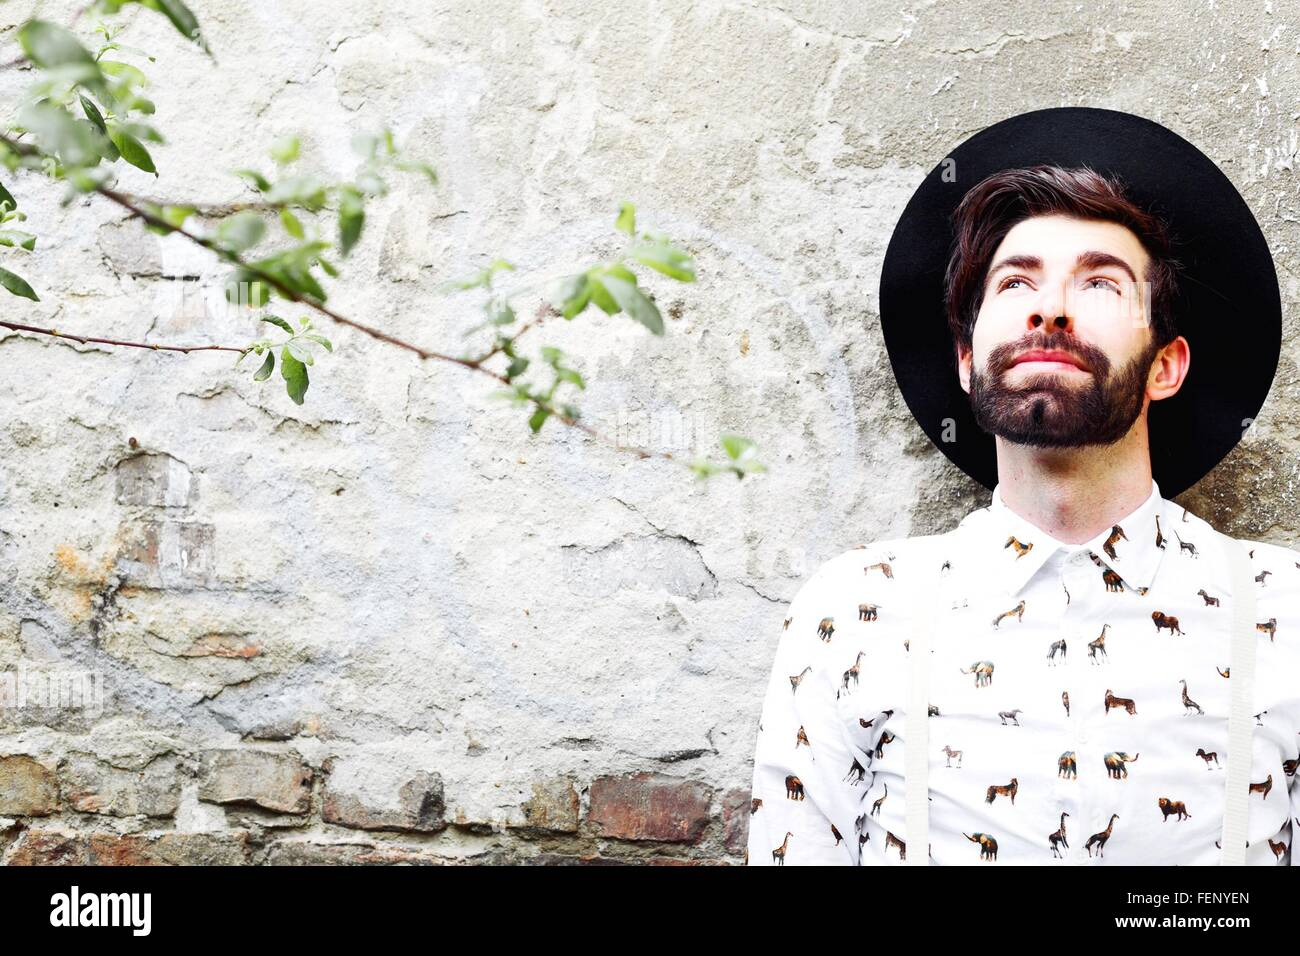 Man Wearing Hat Looking Up - Stock Image